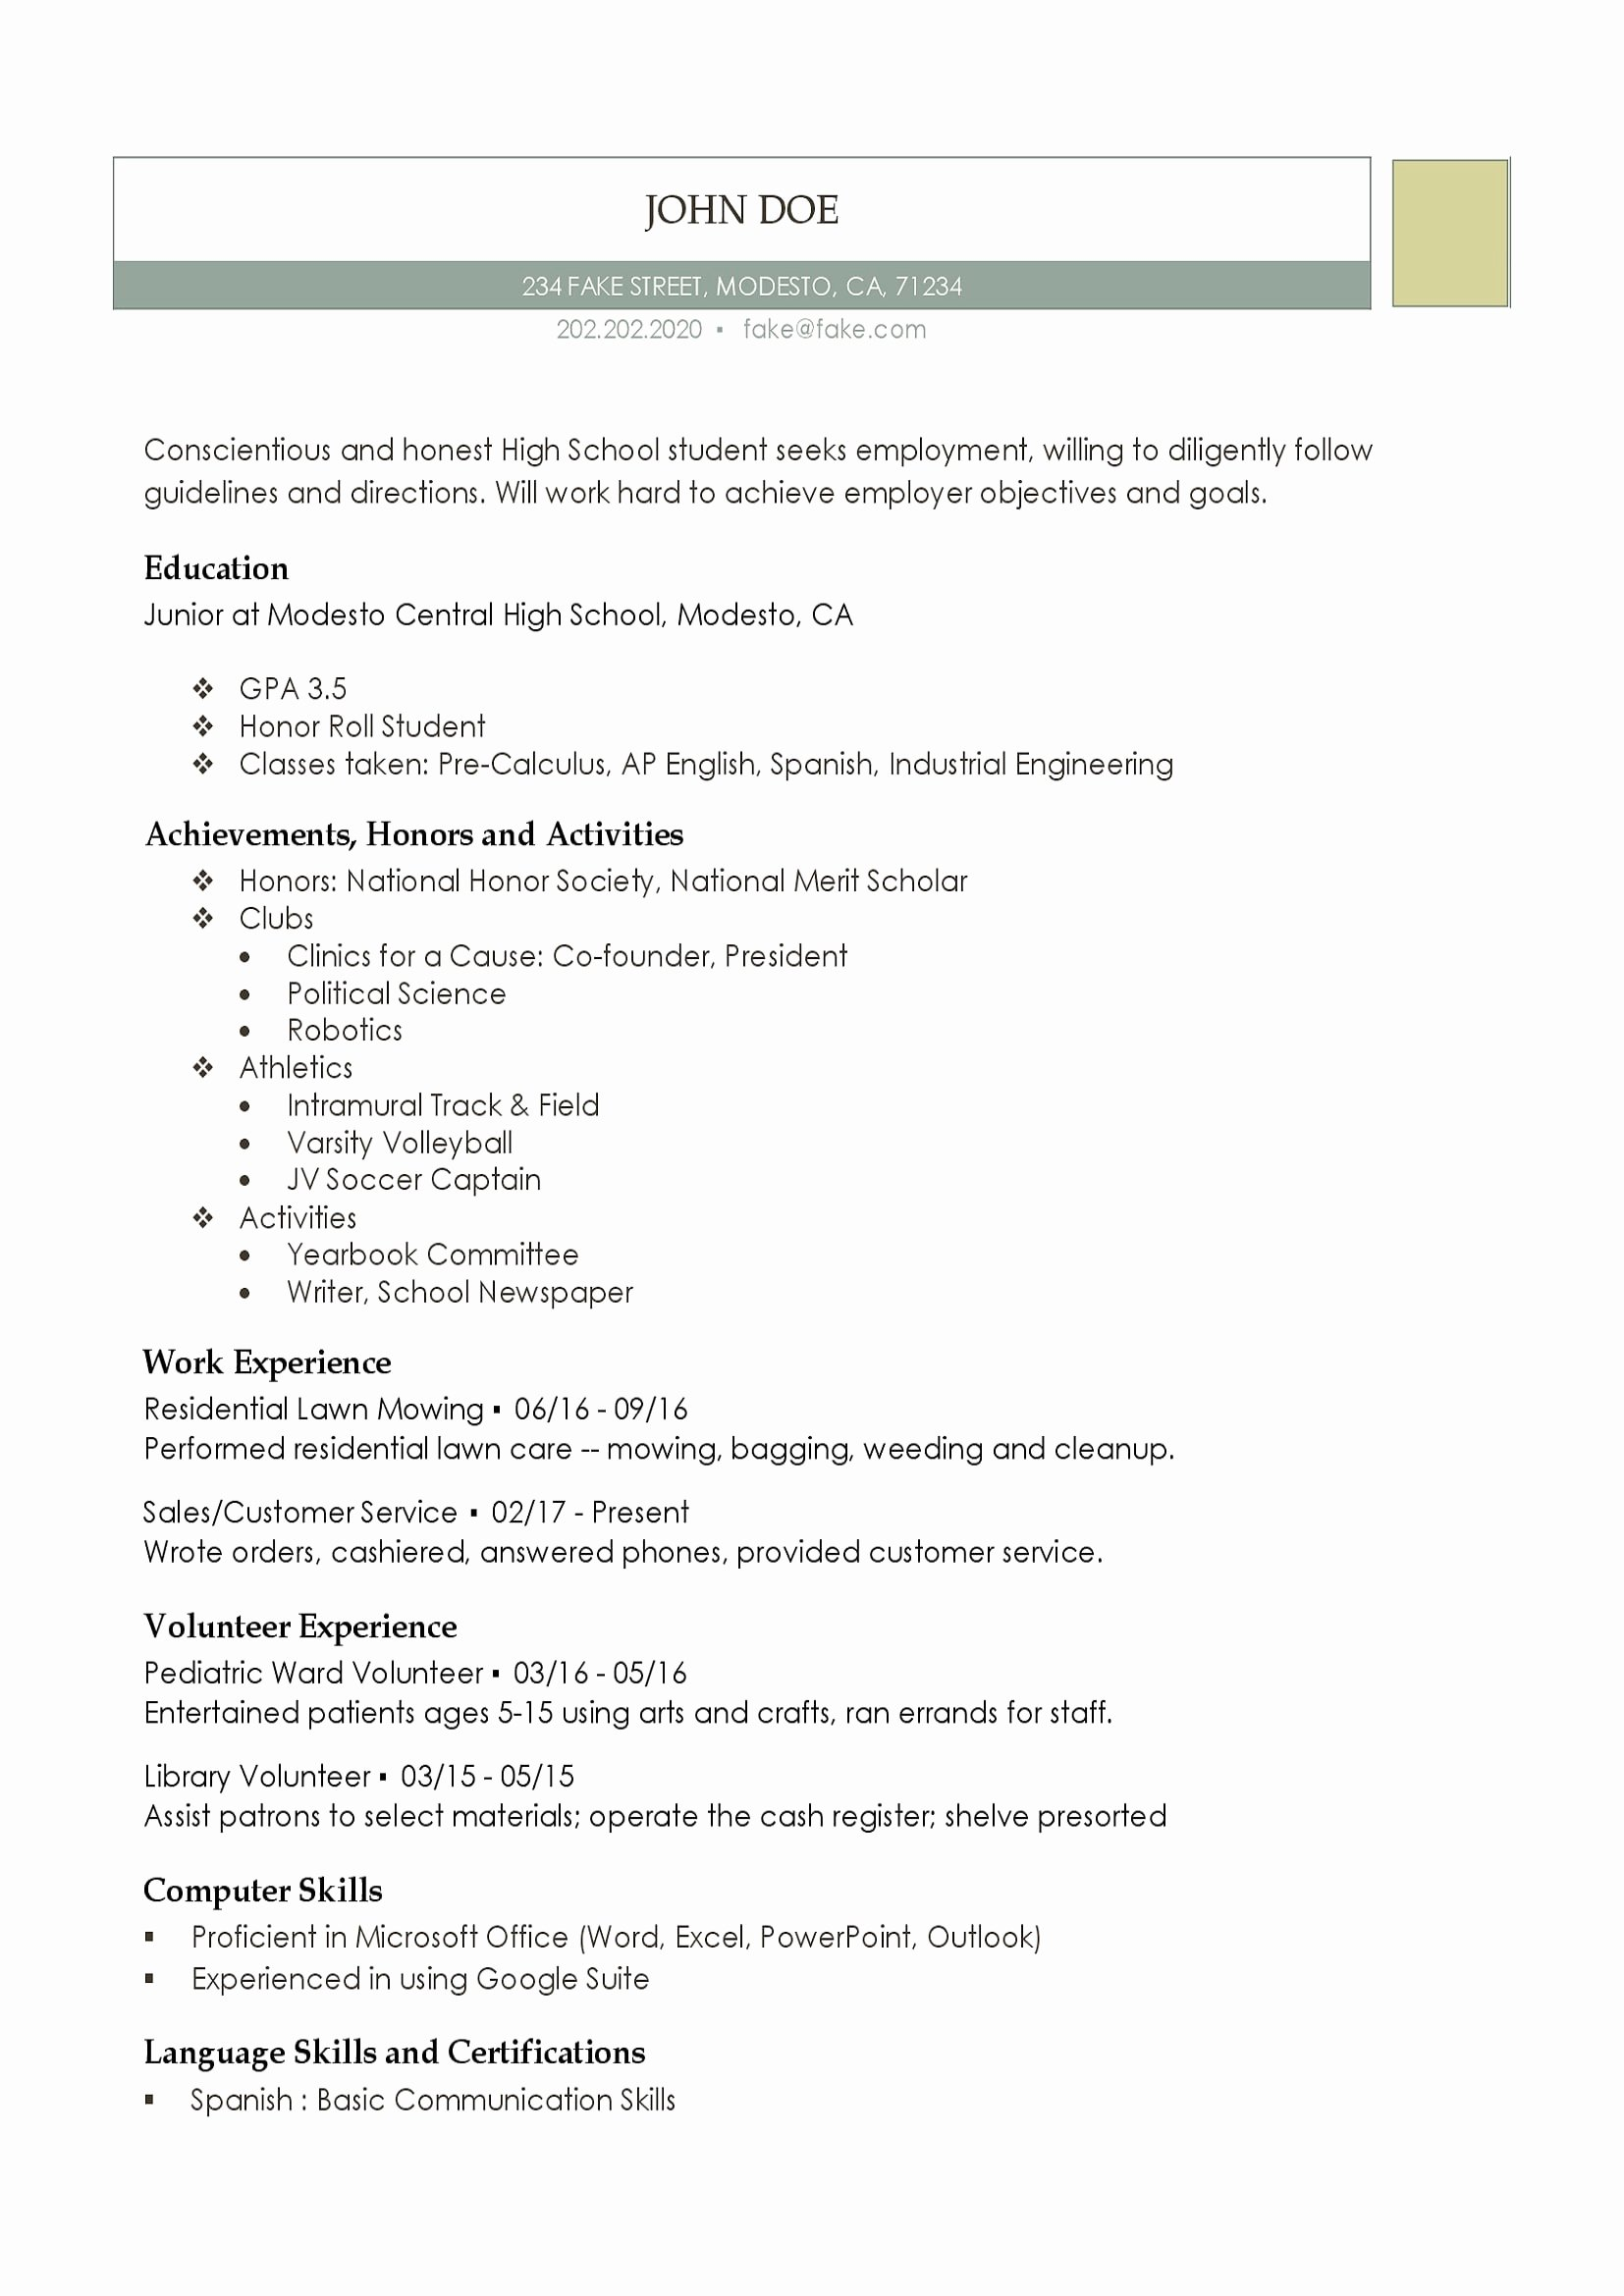 Resume High School Student Beautiful High School Resume Resumes Perfect for High School Students